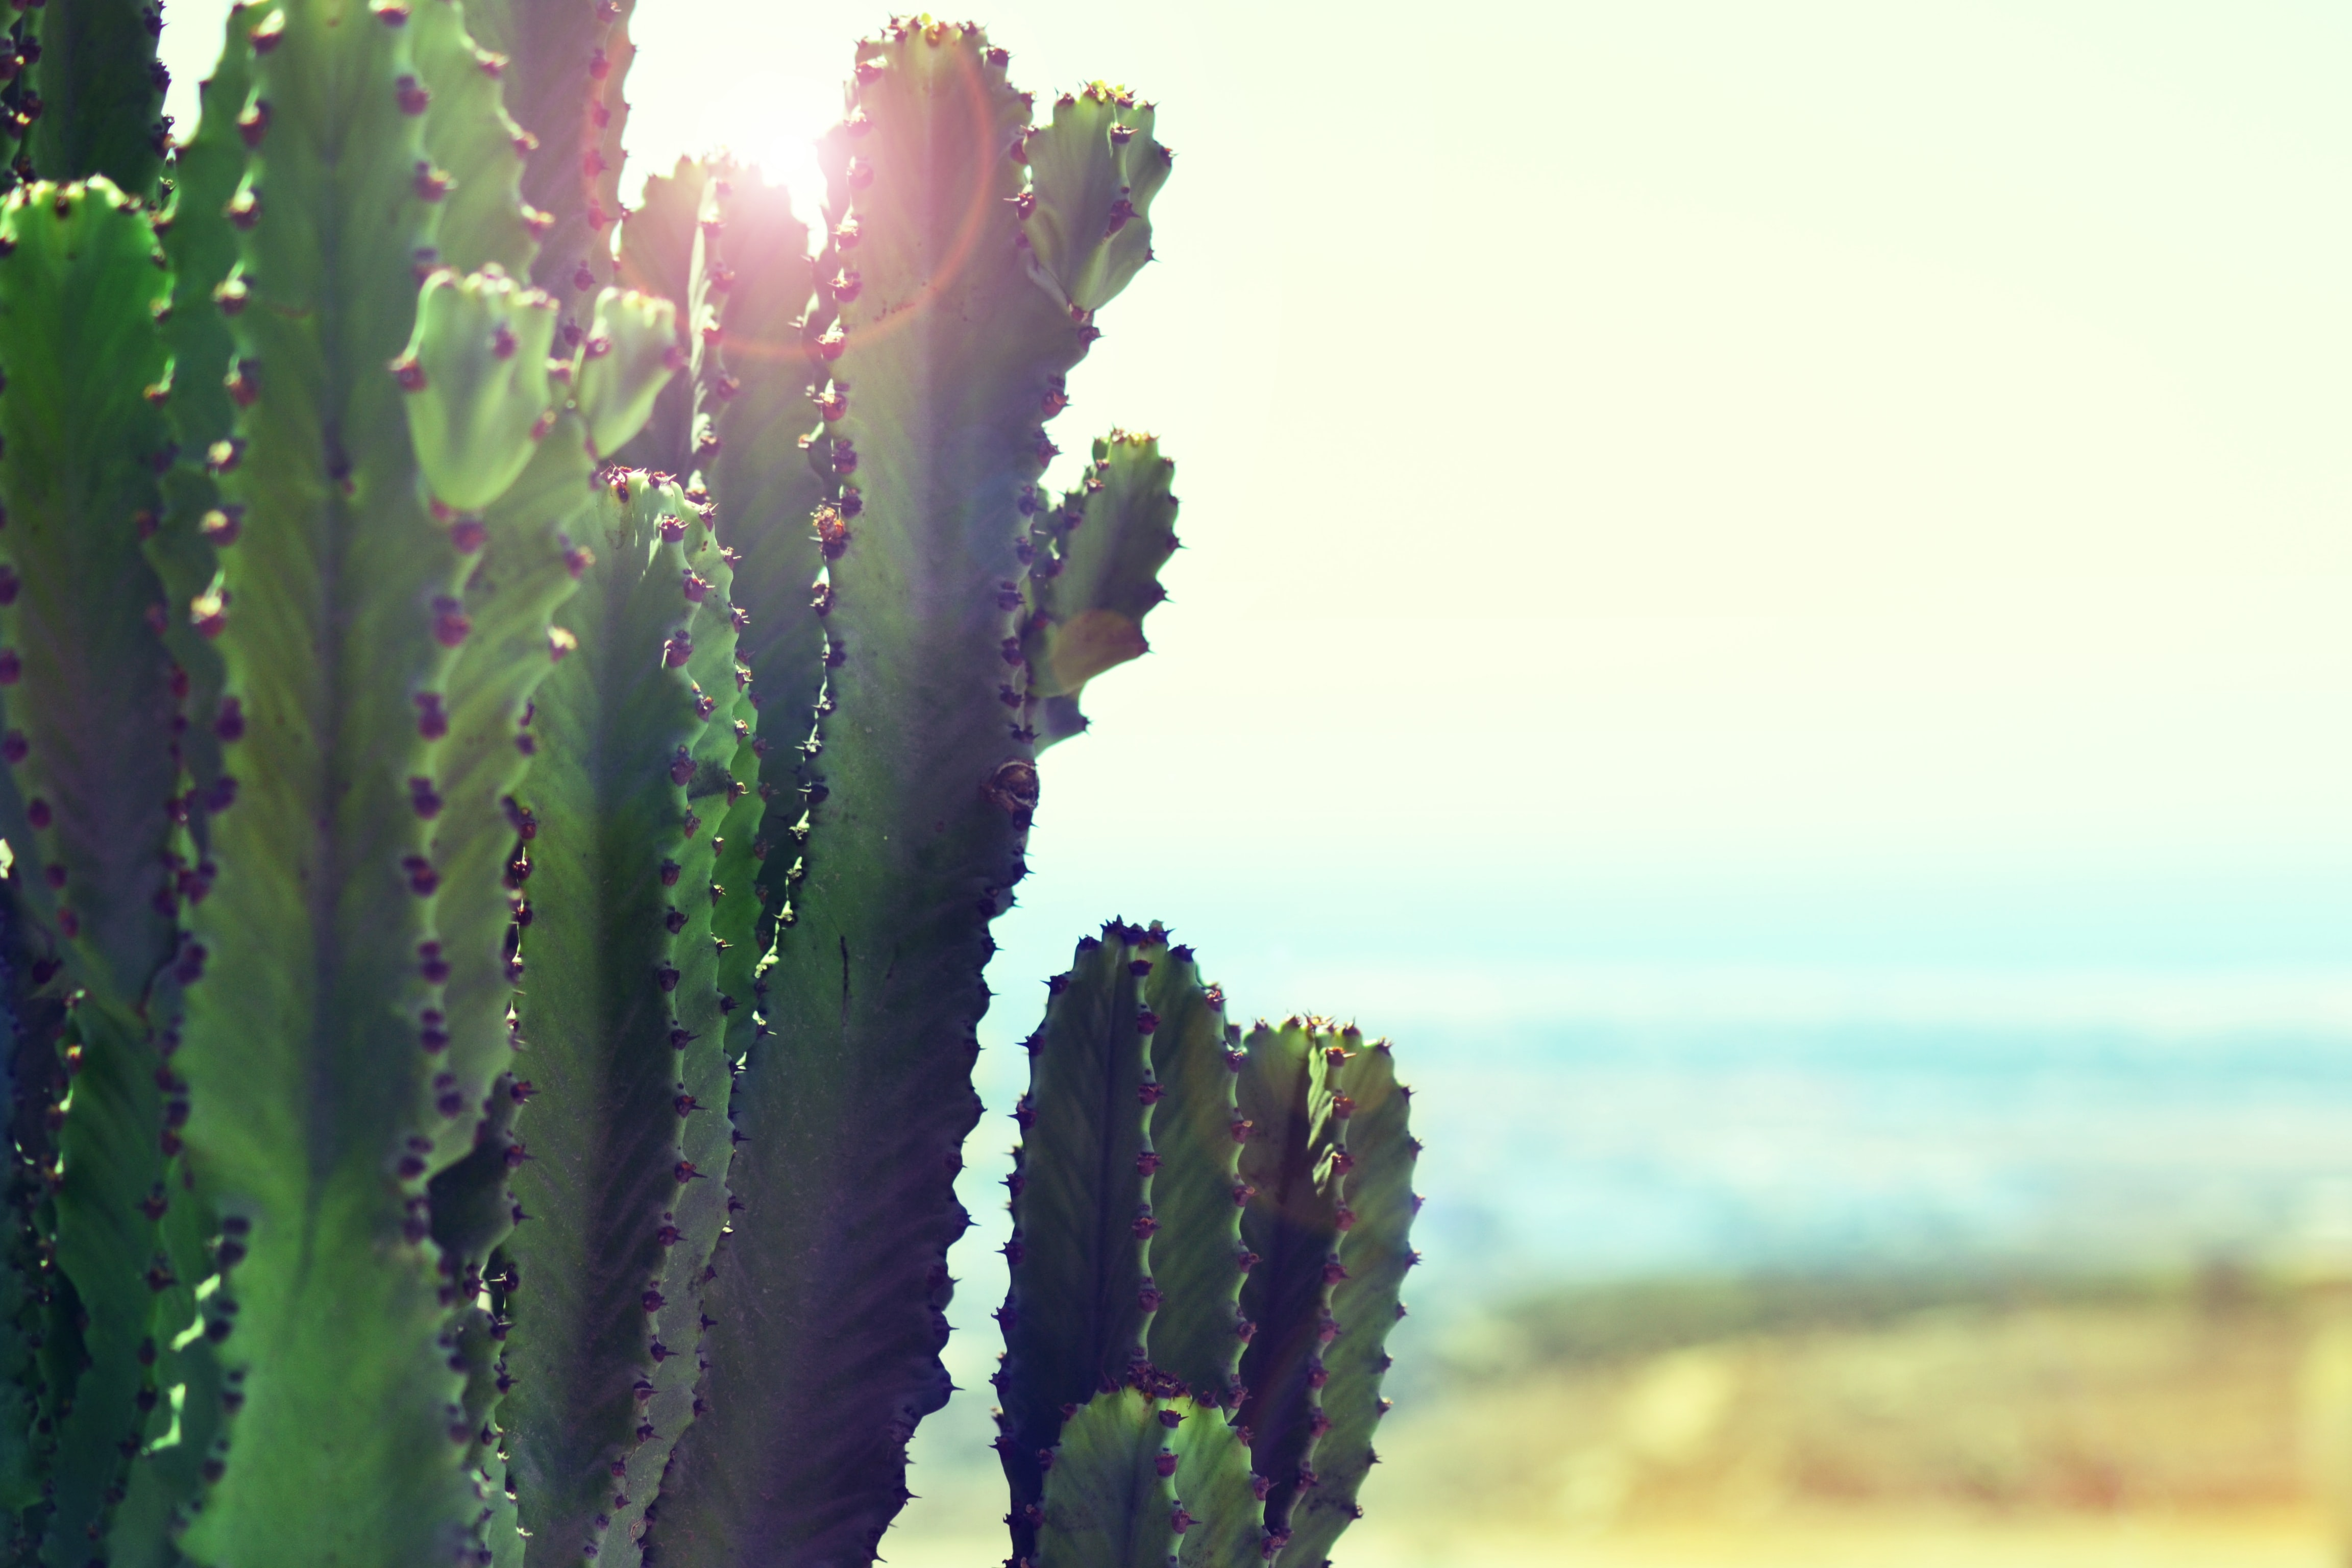 Cactus catches sunlight on a hot day in the desert